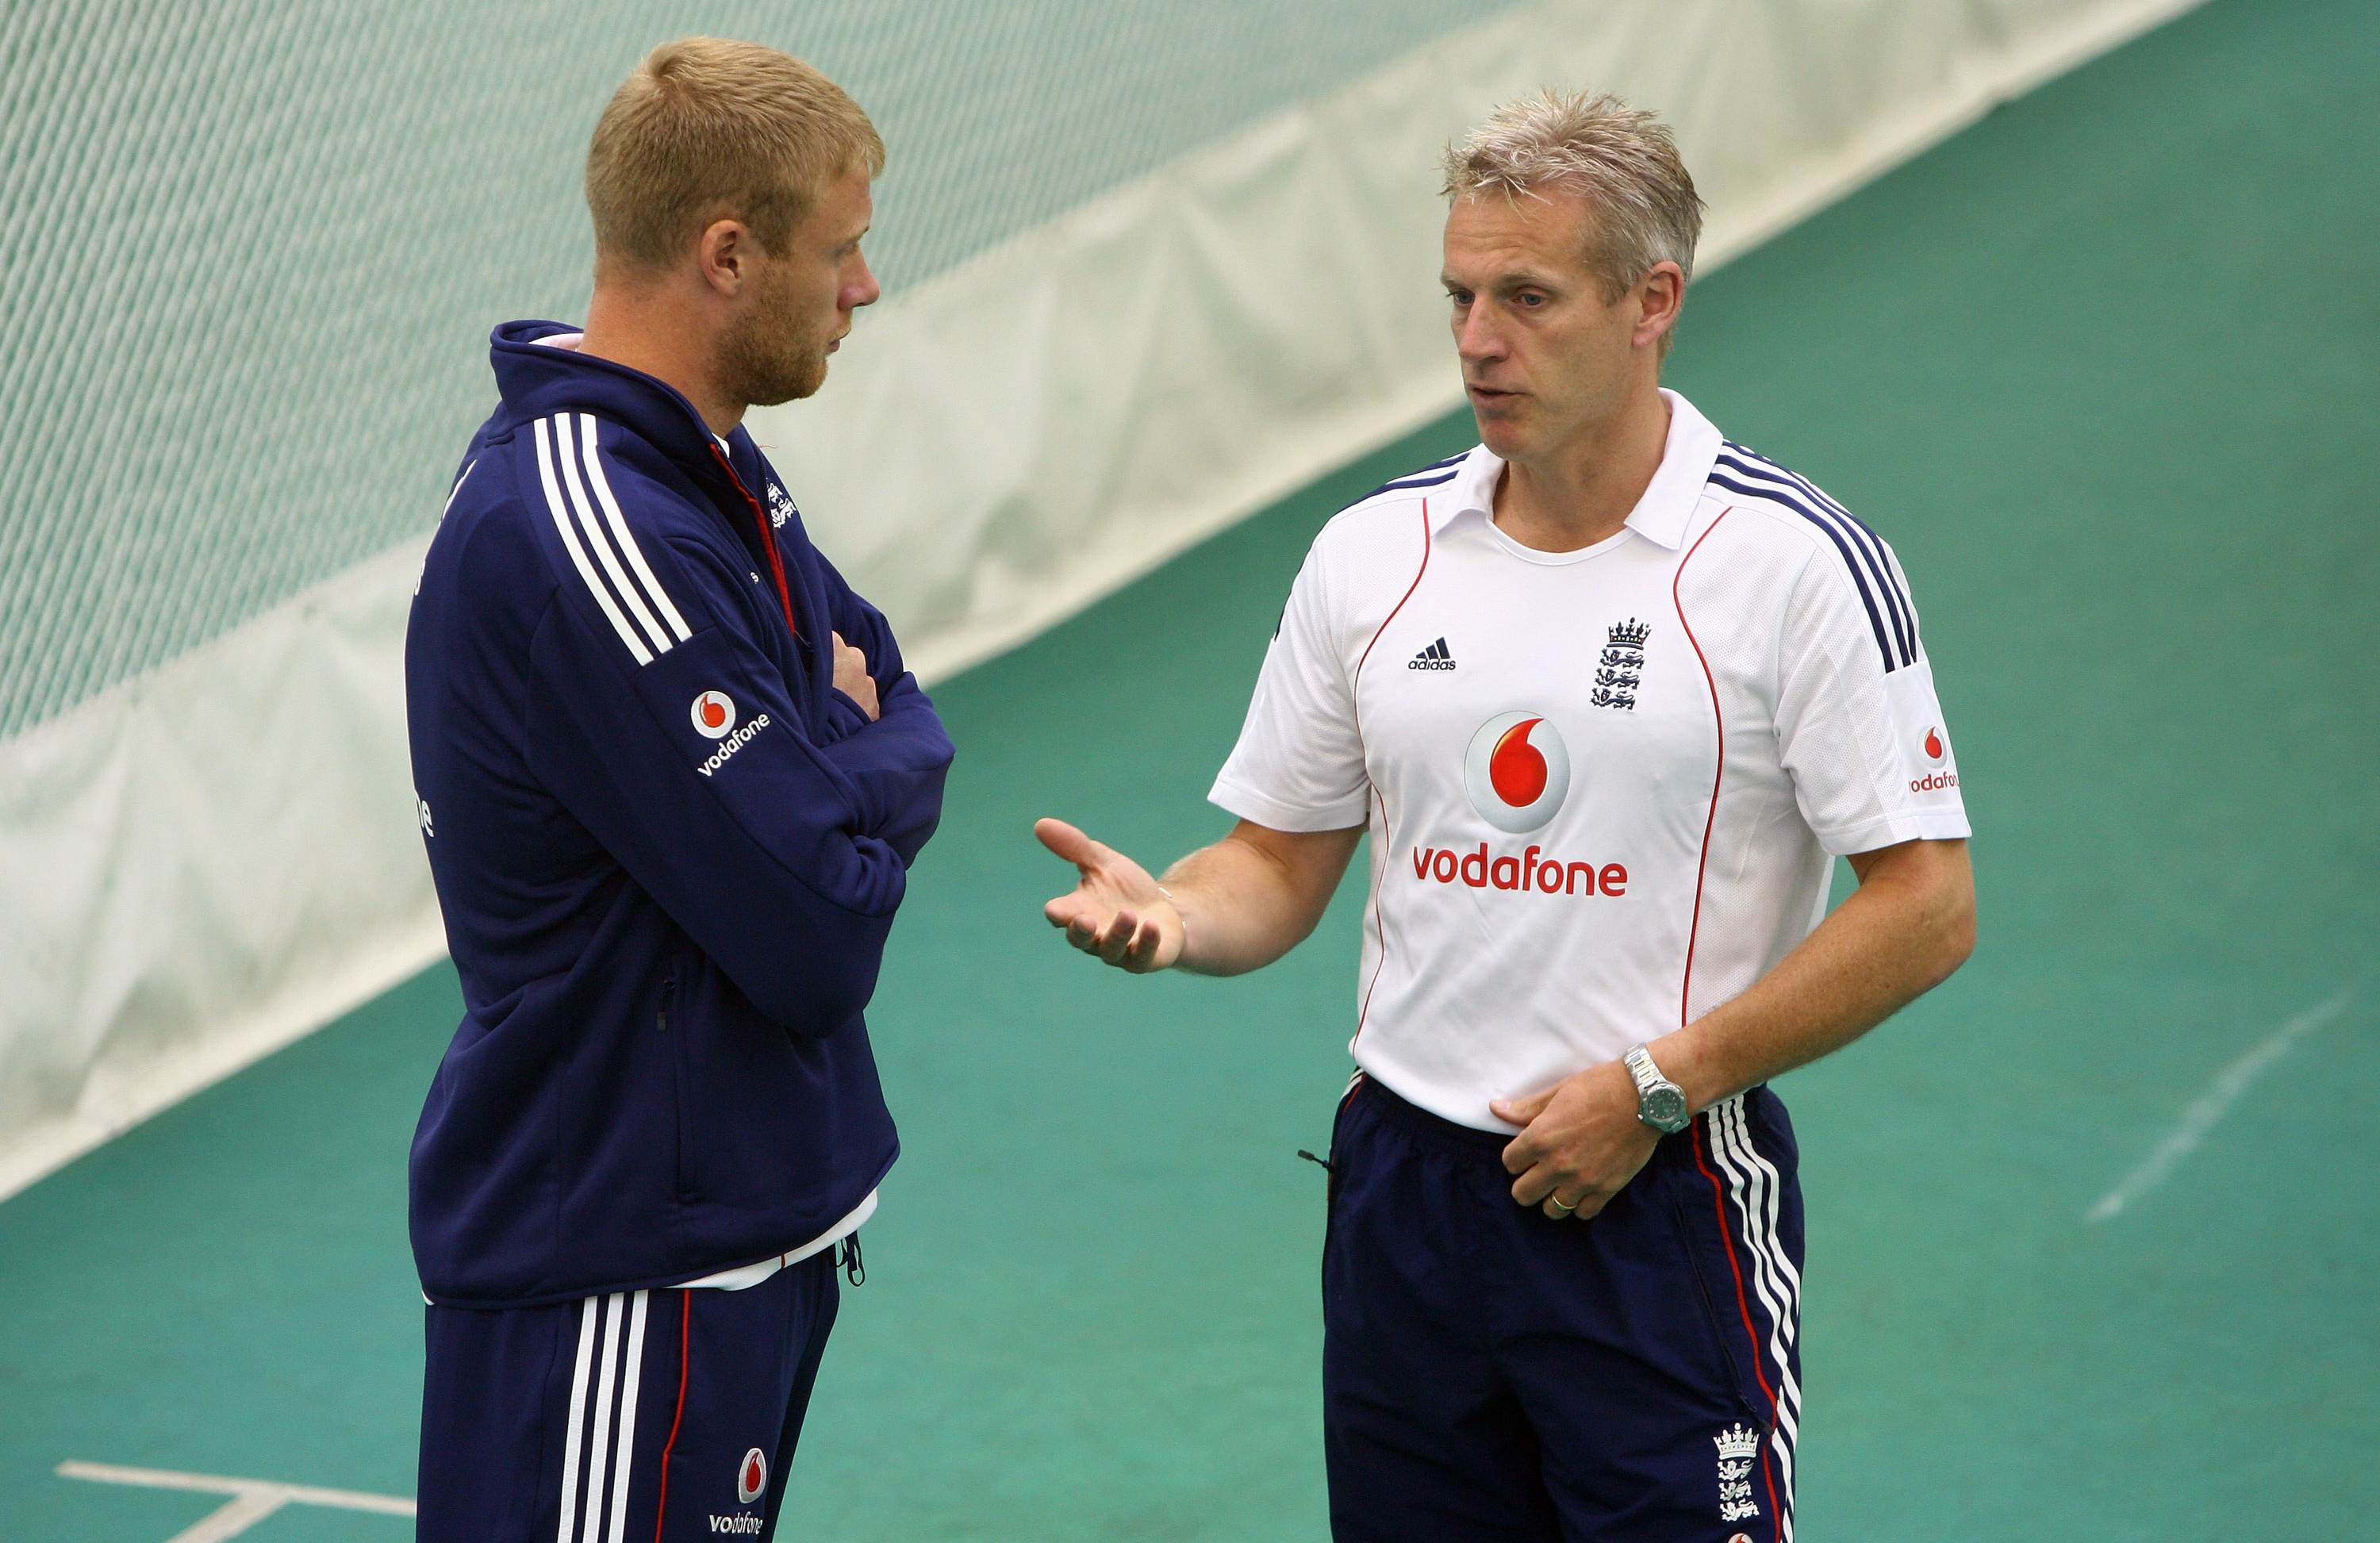 Flintoff applied for the head coach role in 2014, only to step aside for Peter Moores // Getty